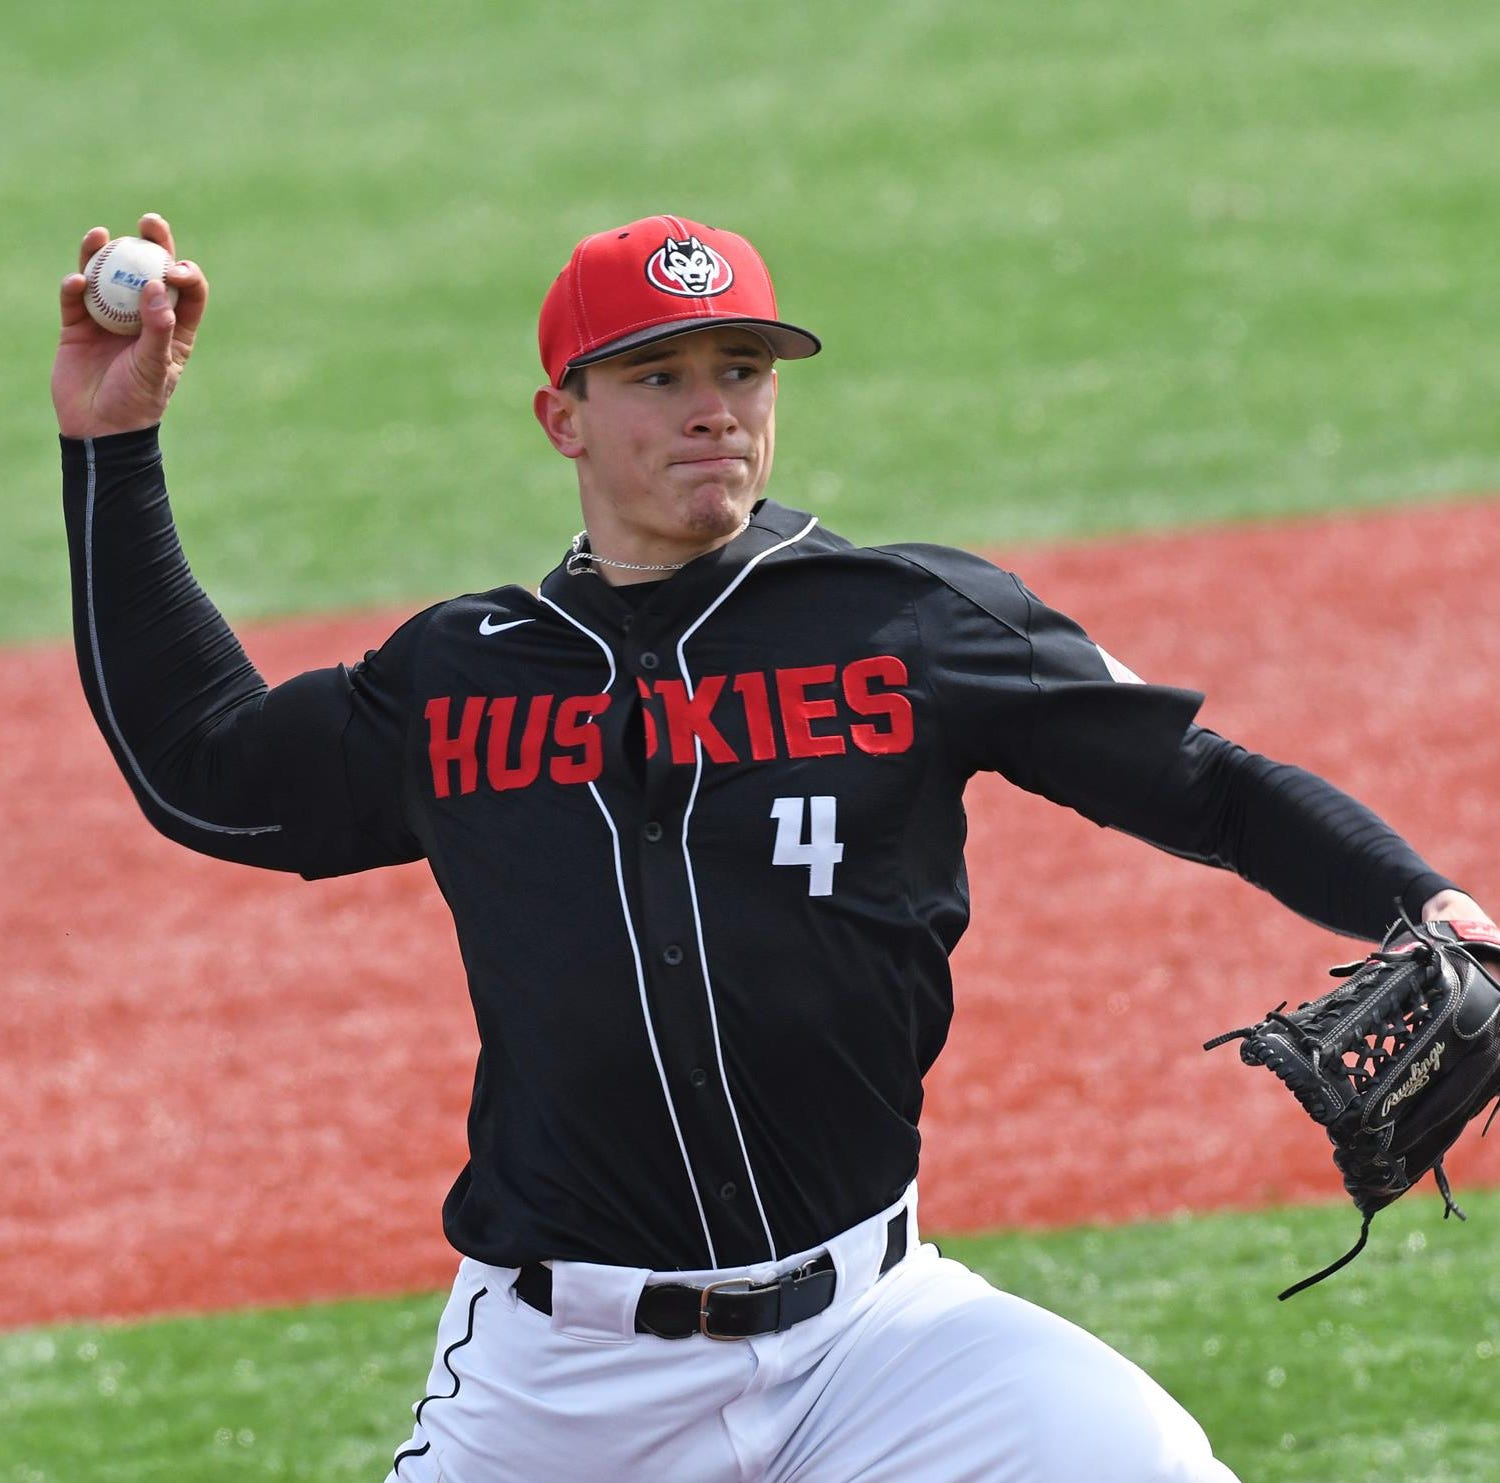 Huskies head into NSIC baseball tourney as No. 3 seed — again